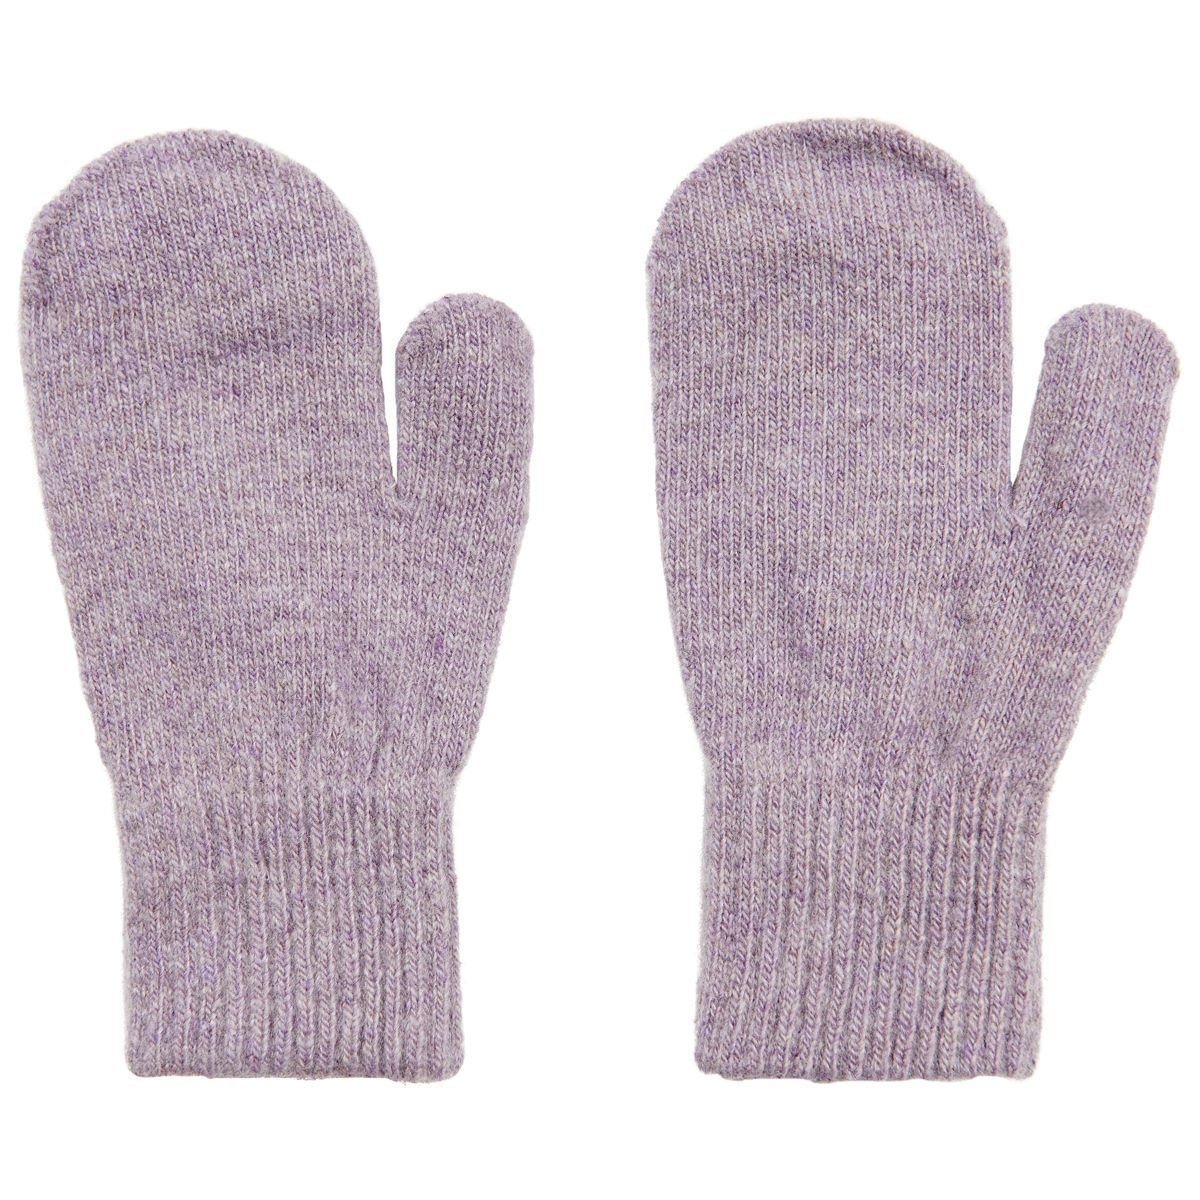 Wool Baby-Toddler Mittens - Lavender (1-2 Years)